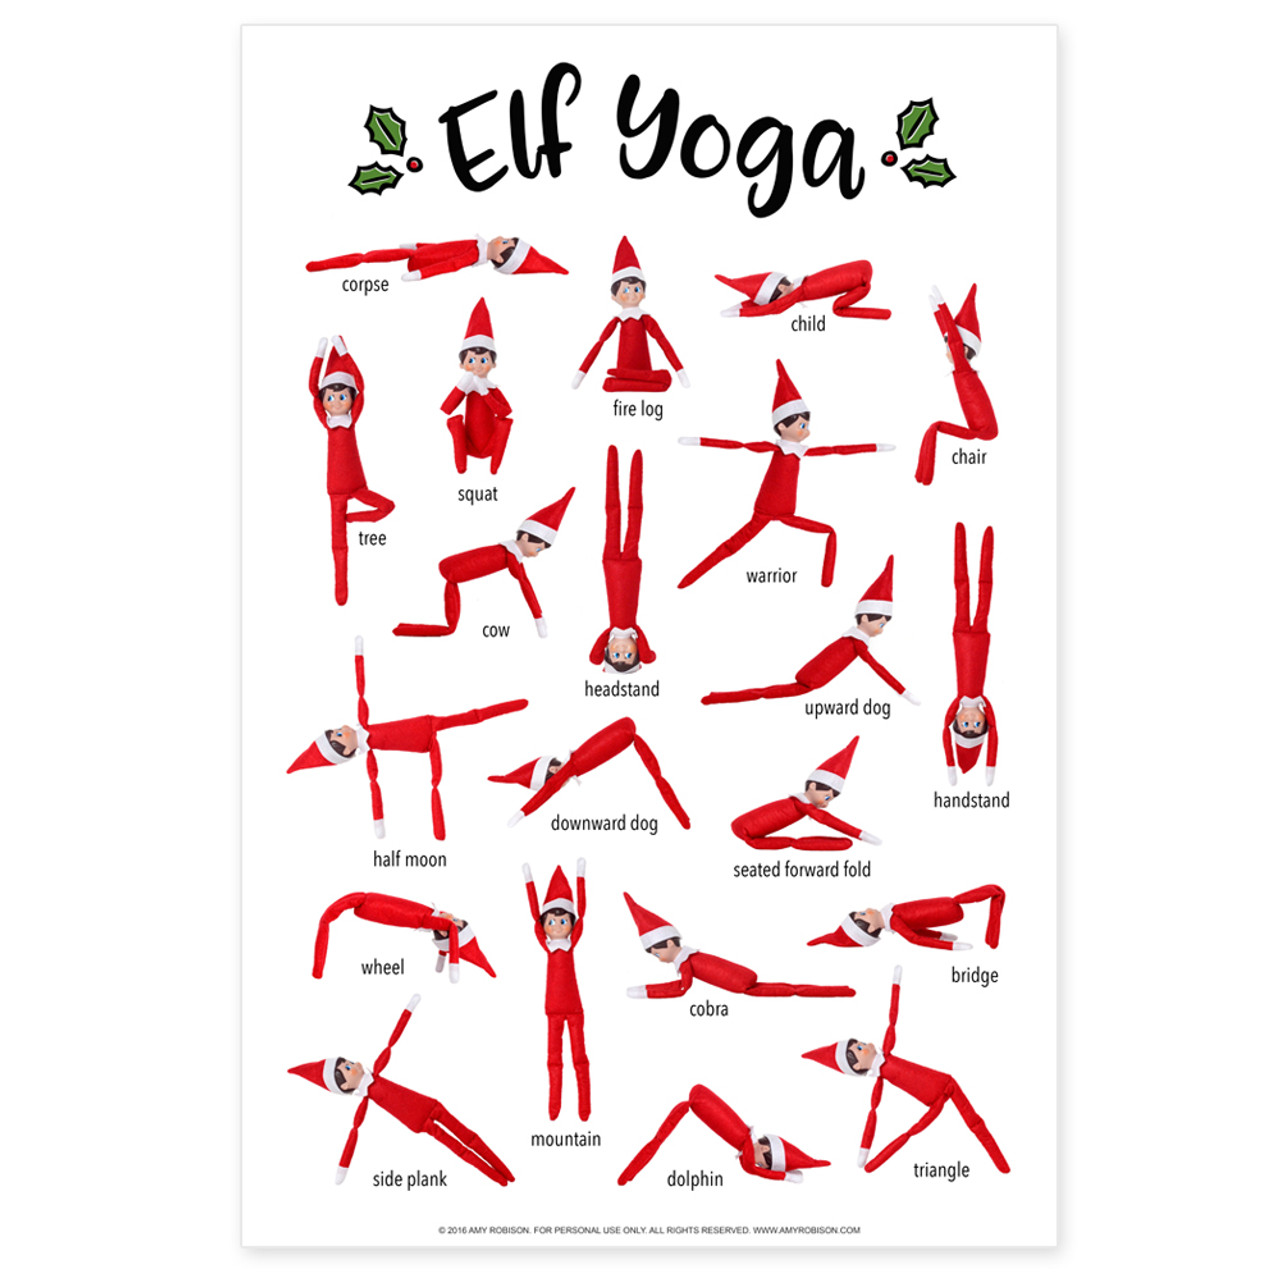 picture relating to Printable Poster titled Elf Yoga Poster Printable